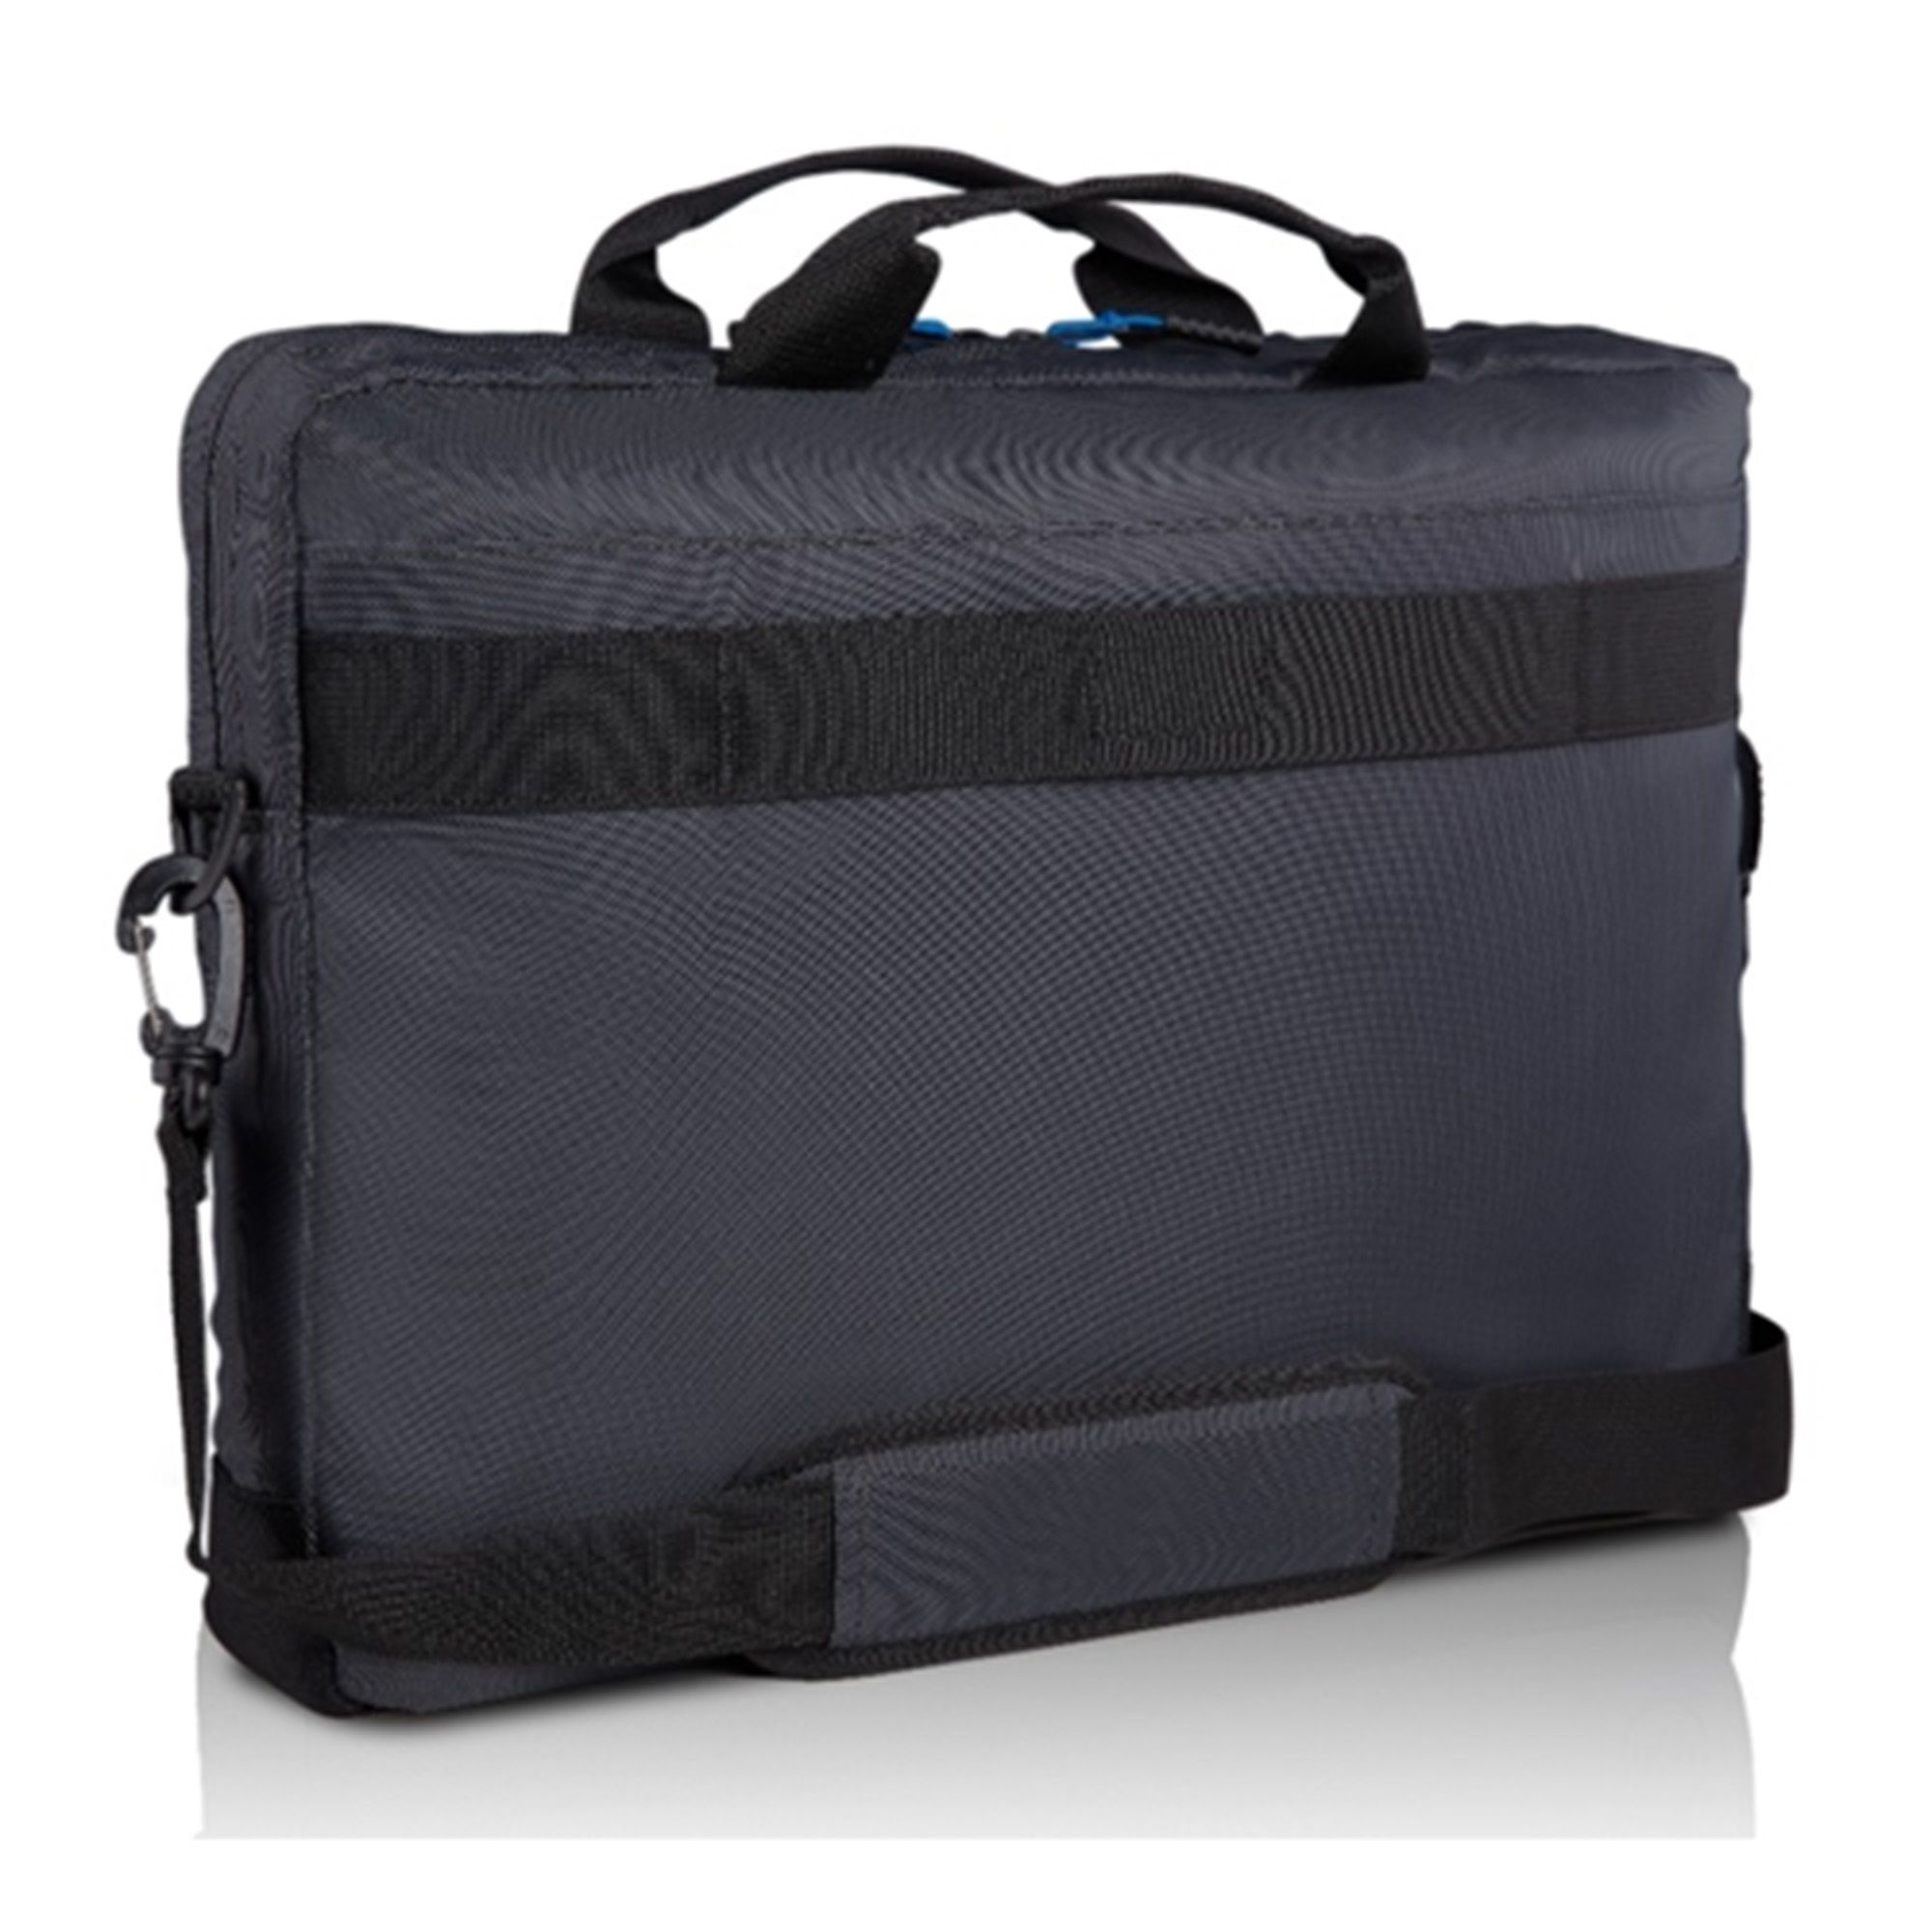 Geanta Dell Urban Briefcase 15.6 inch